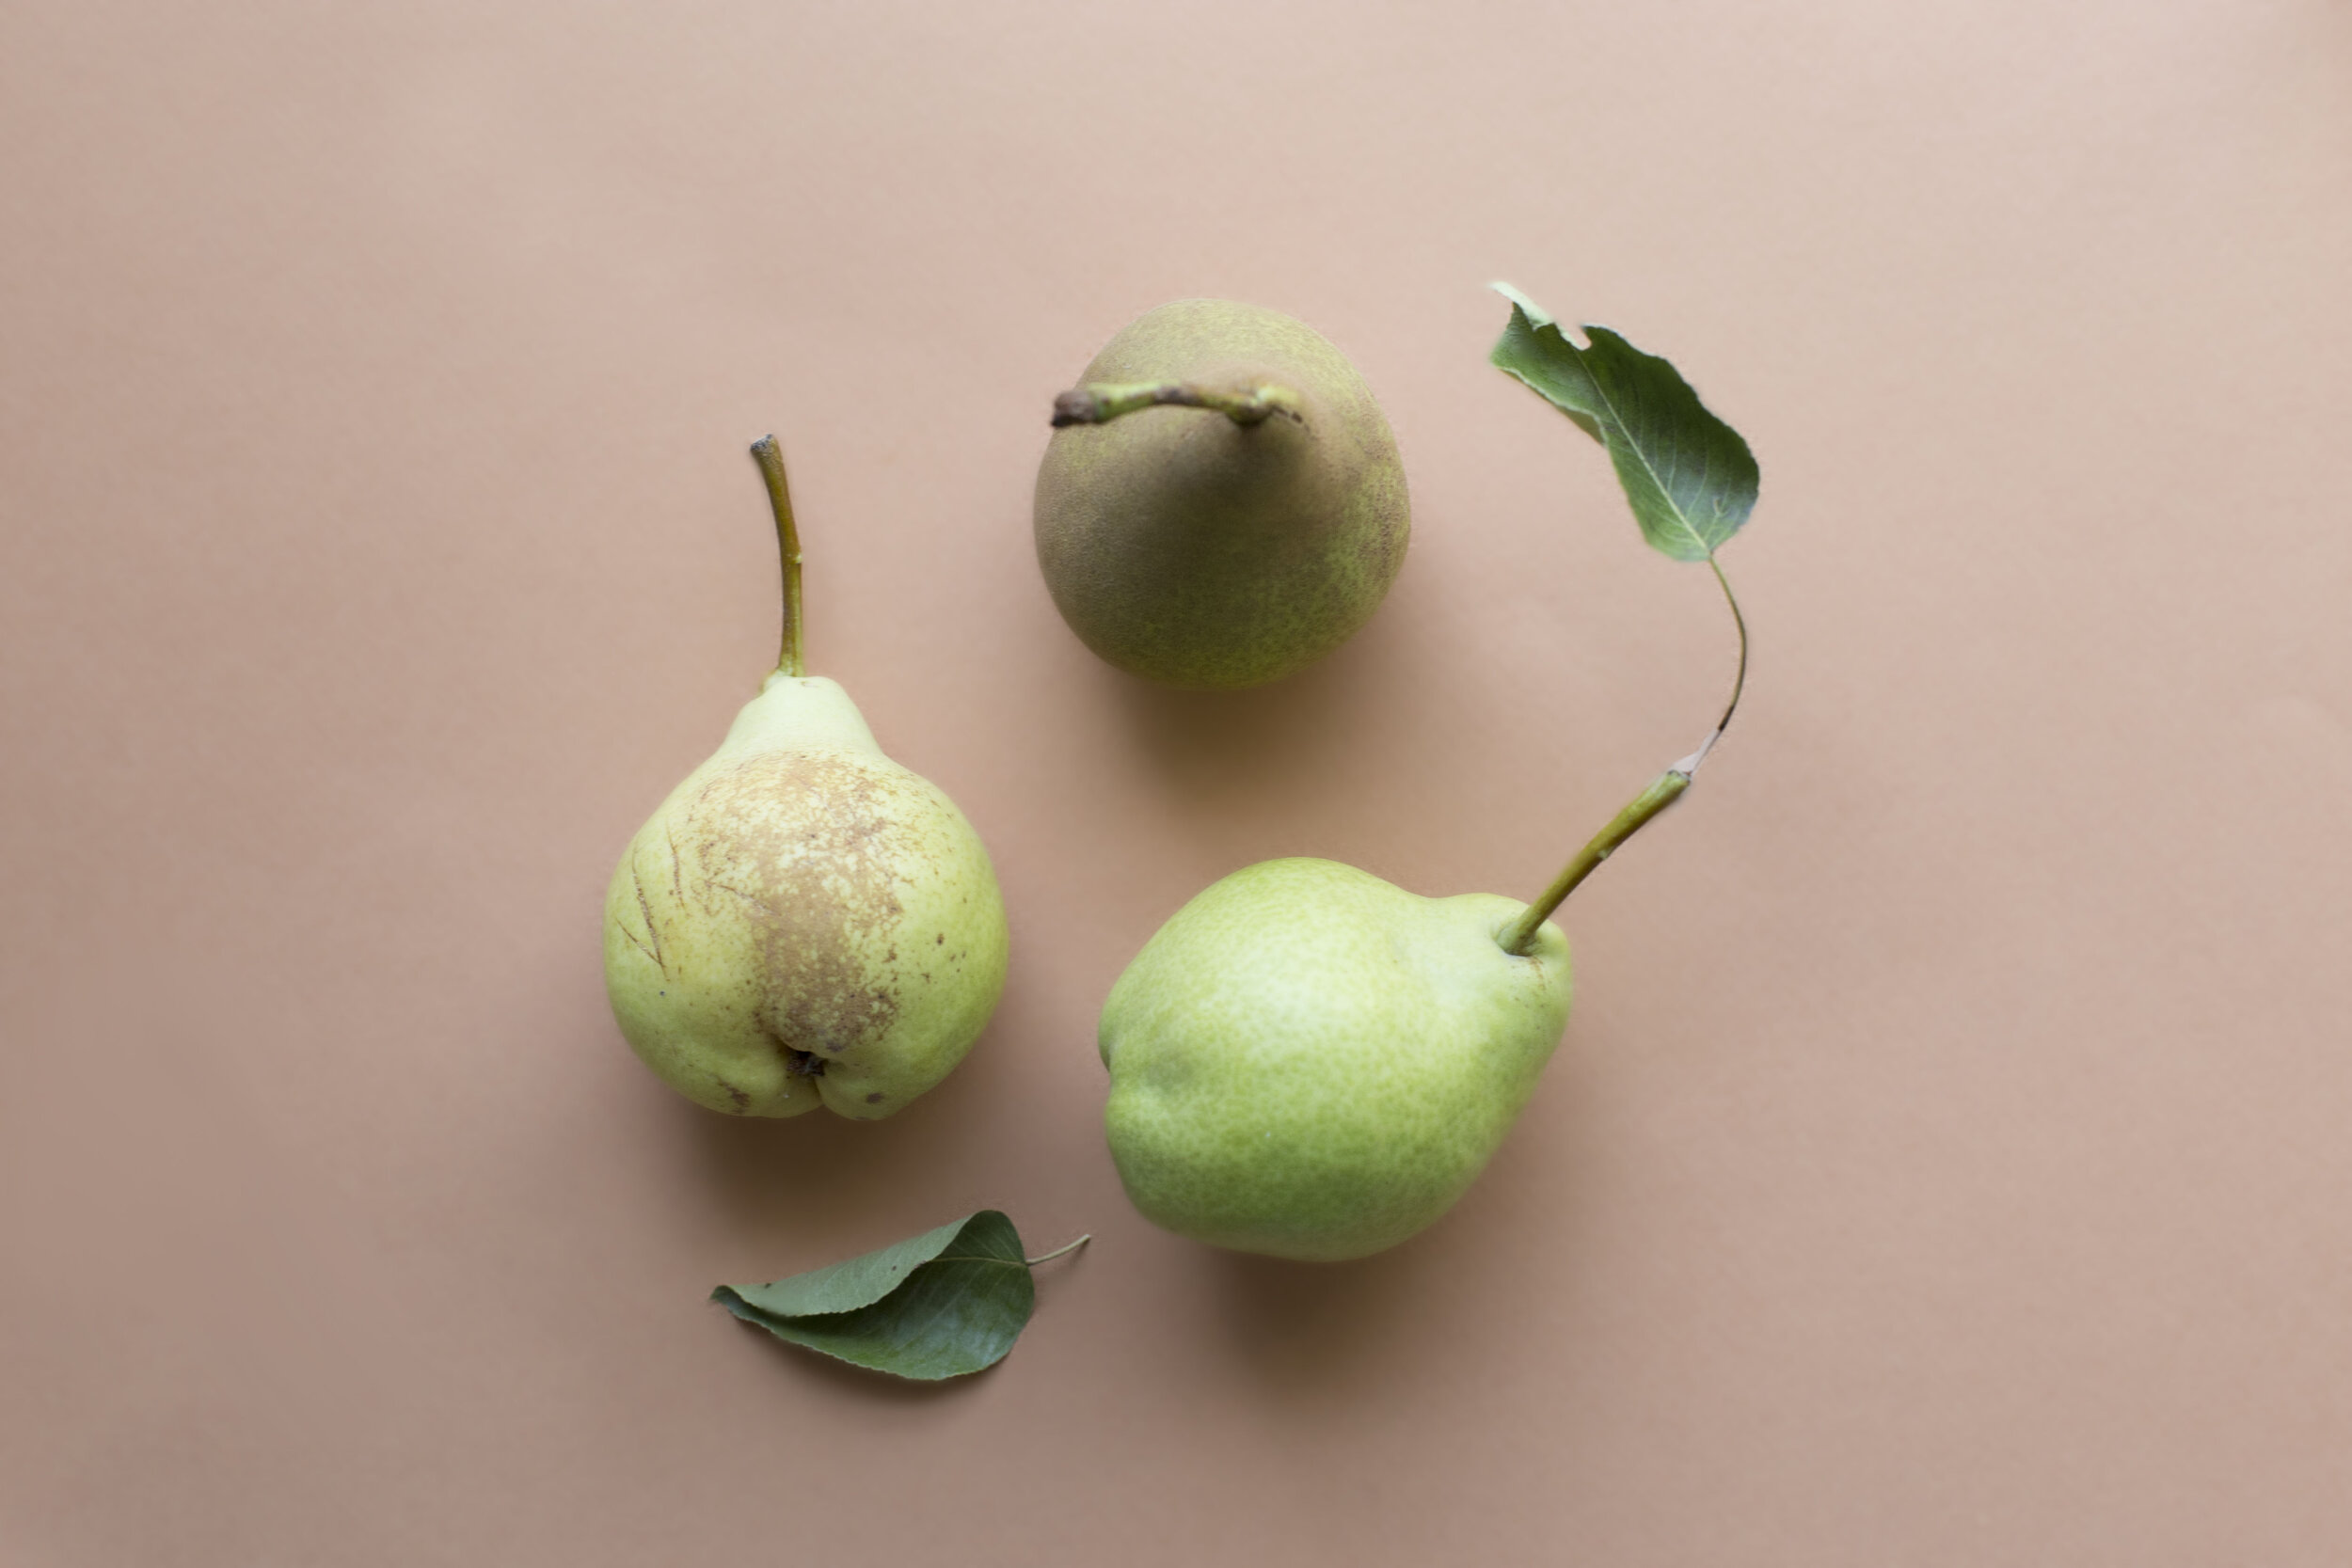 When your pears start to brown, turn them to a tart or jam!